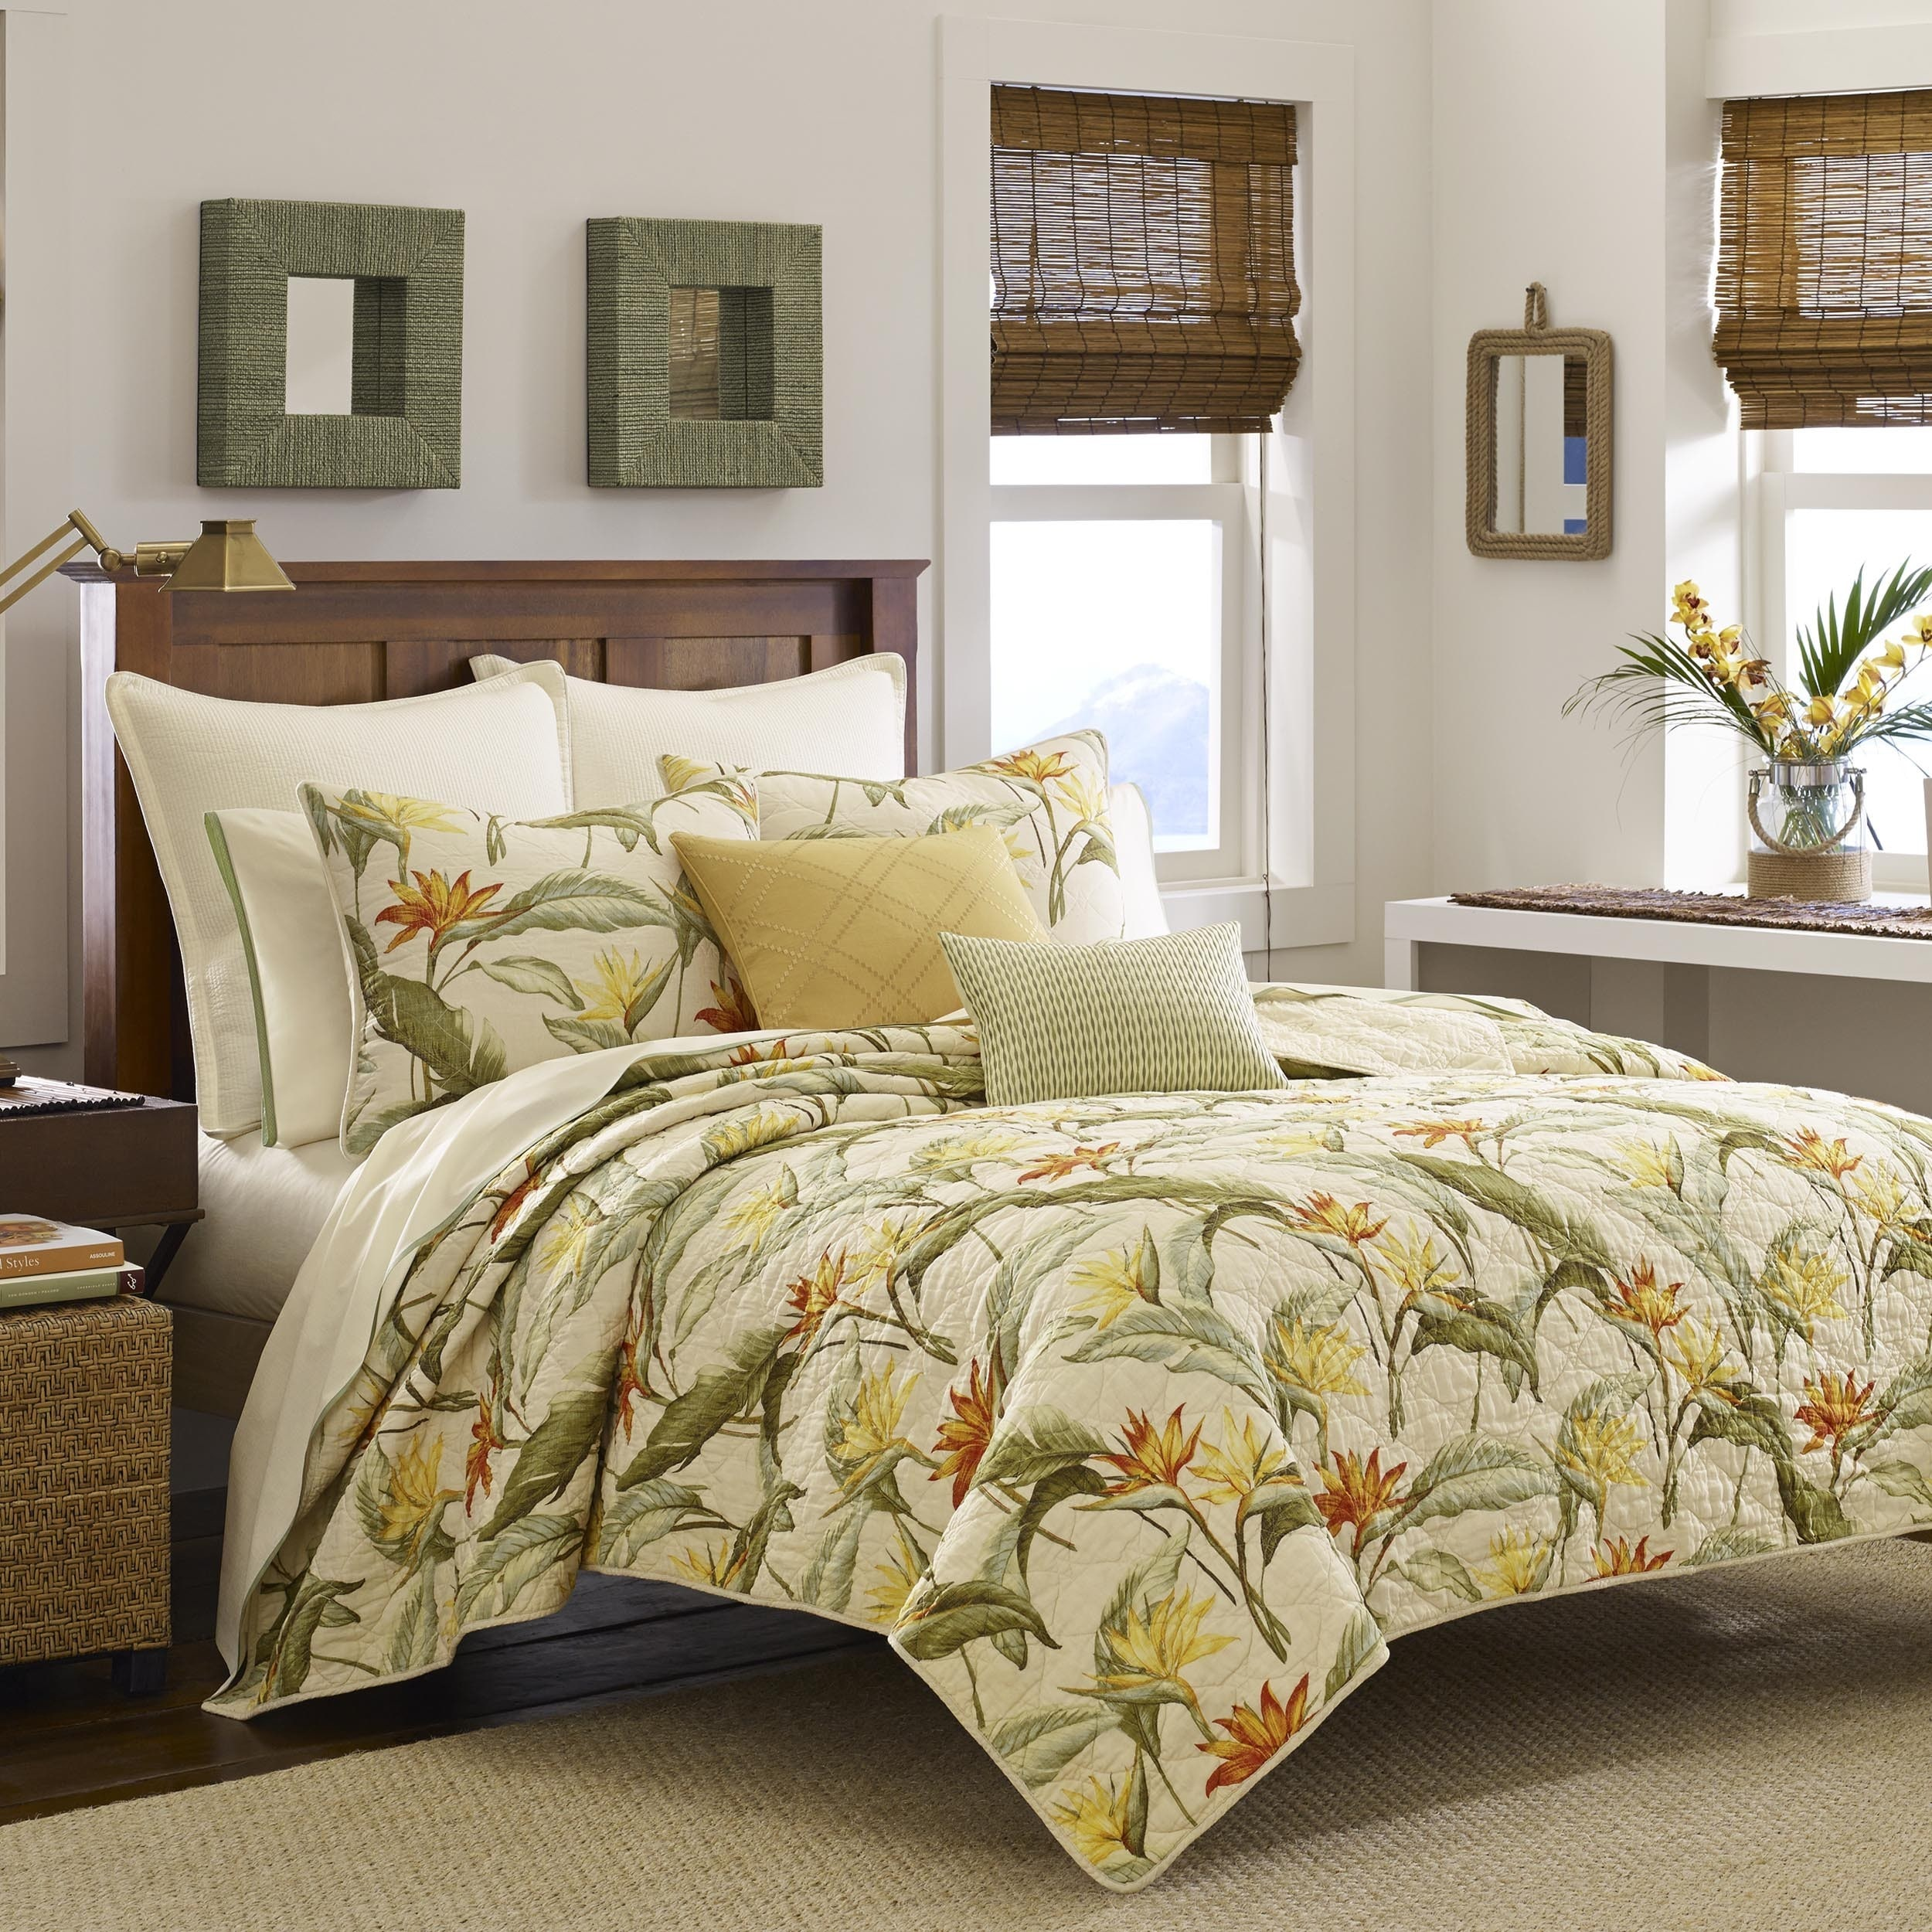 Tommy Bahama Birds of Paradise Quilt (Twin), Green (Cotto...